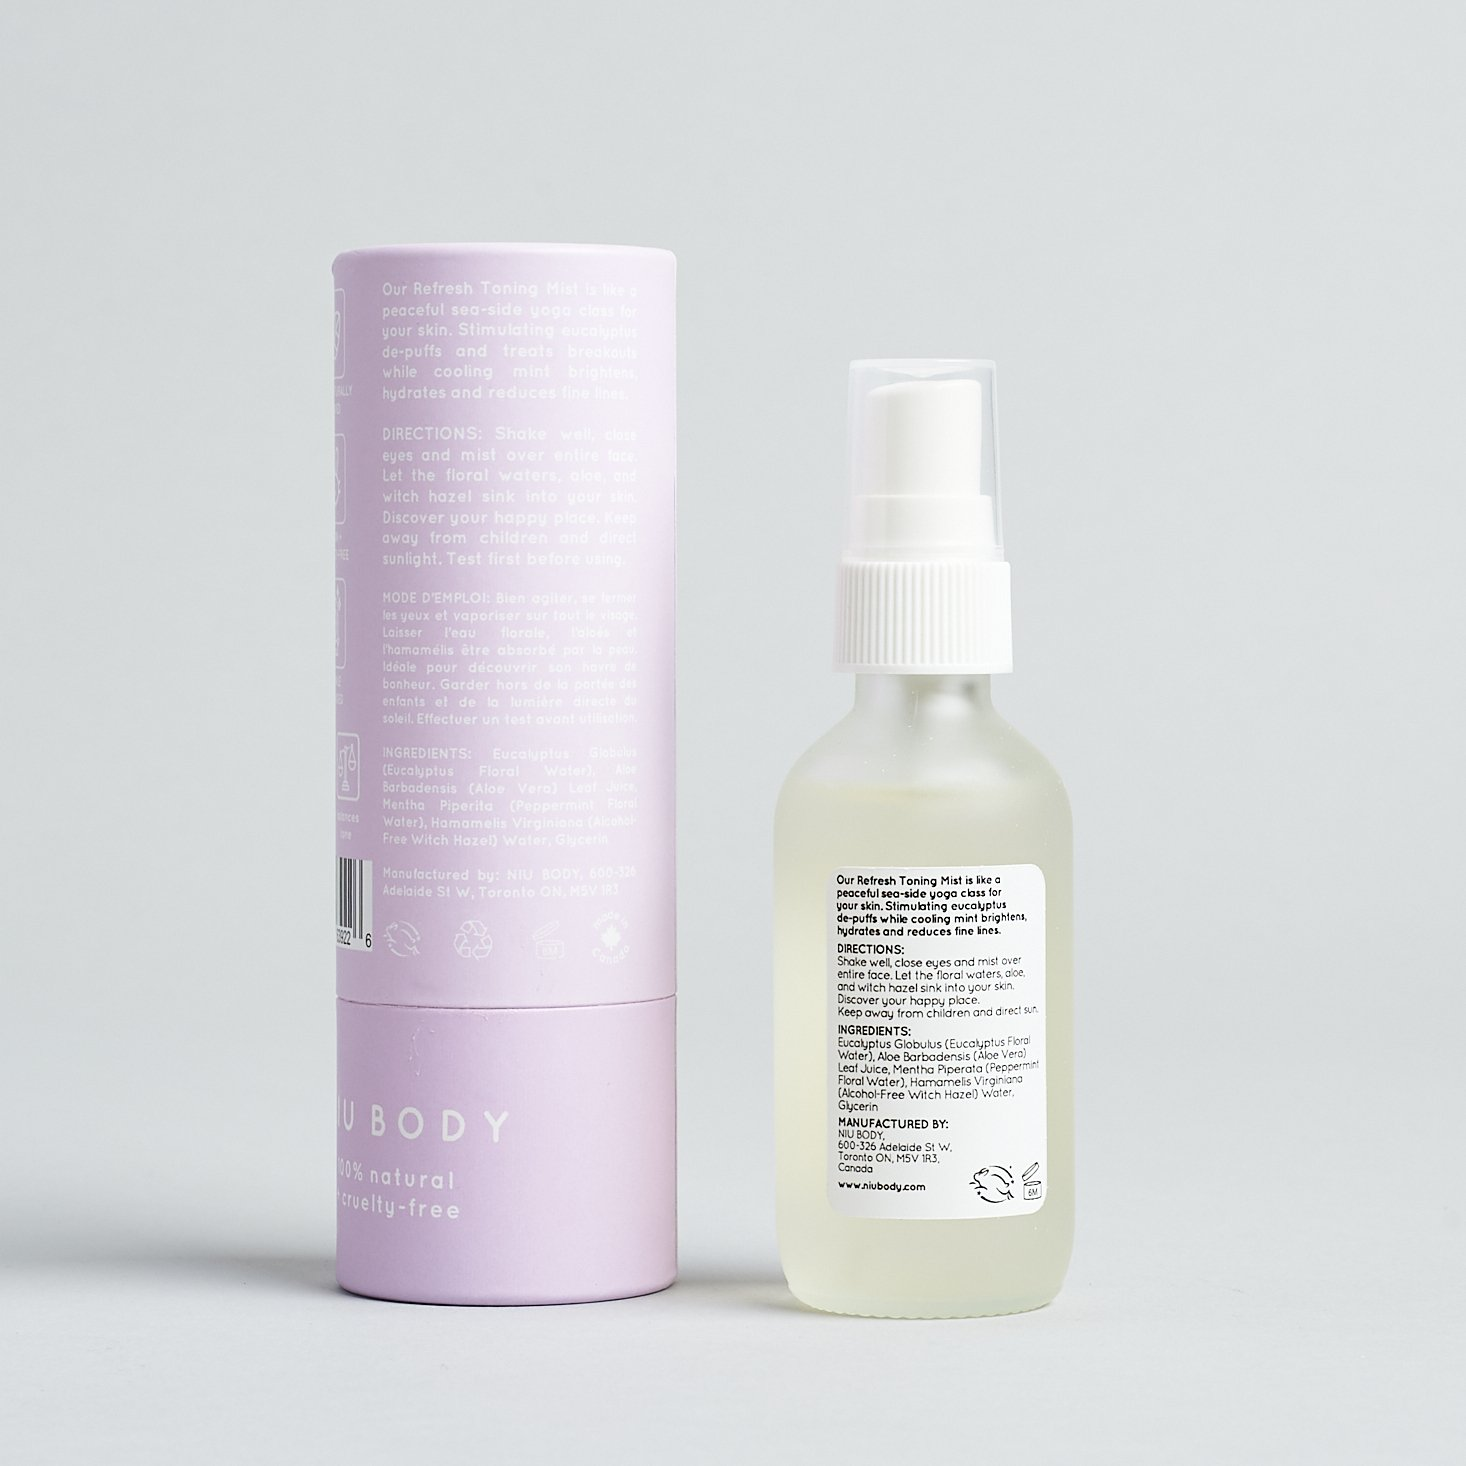 bacl of Niu Body Refresh Eucalyptus + Mint Toning Mist with box